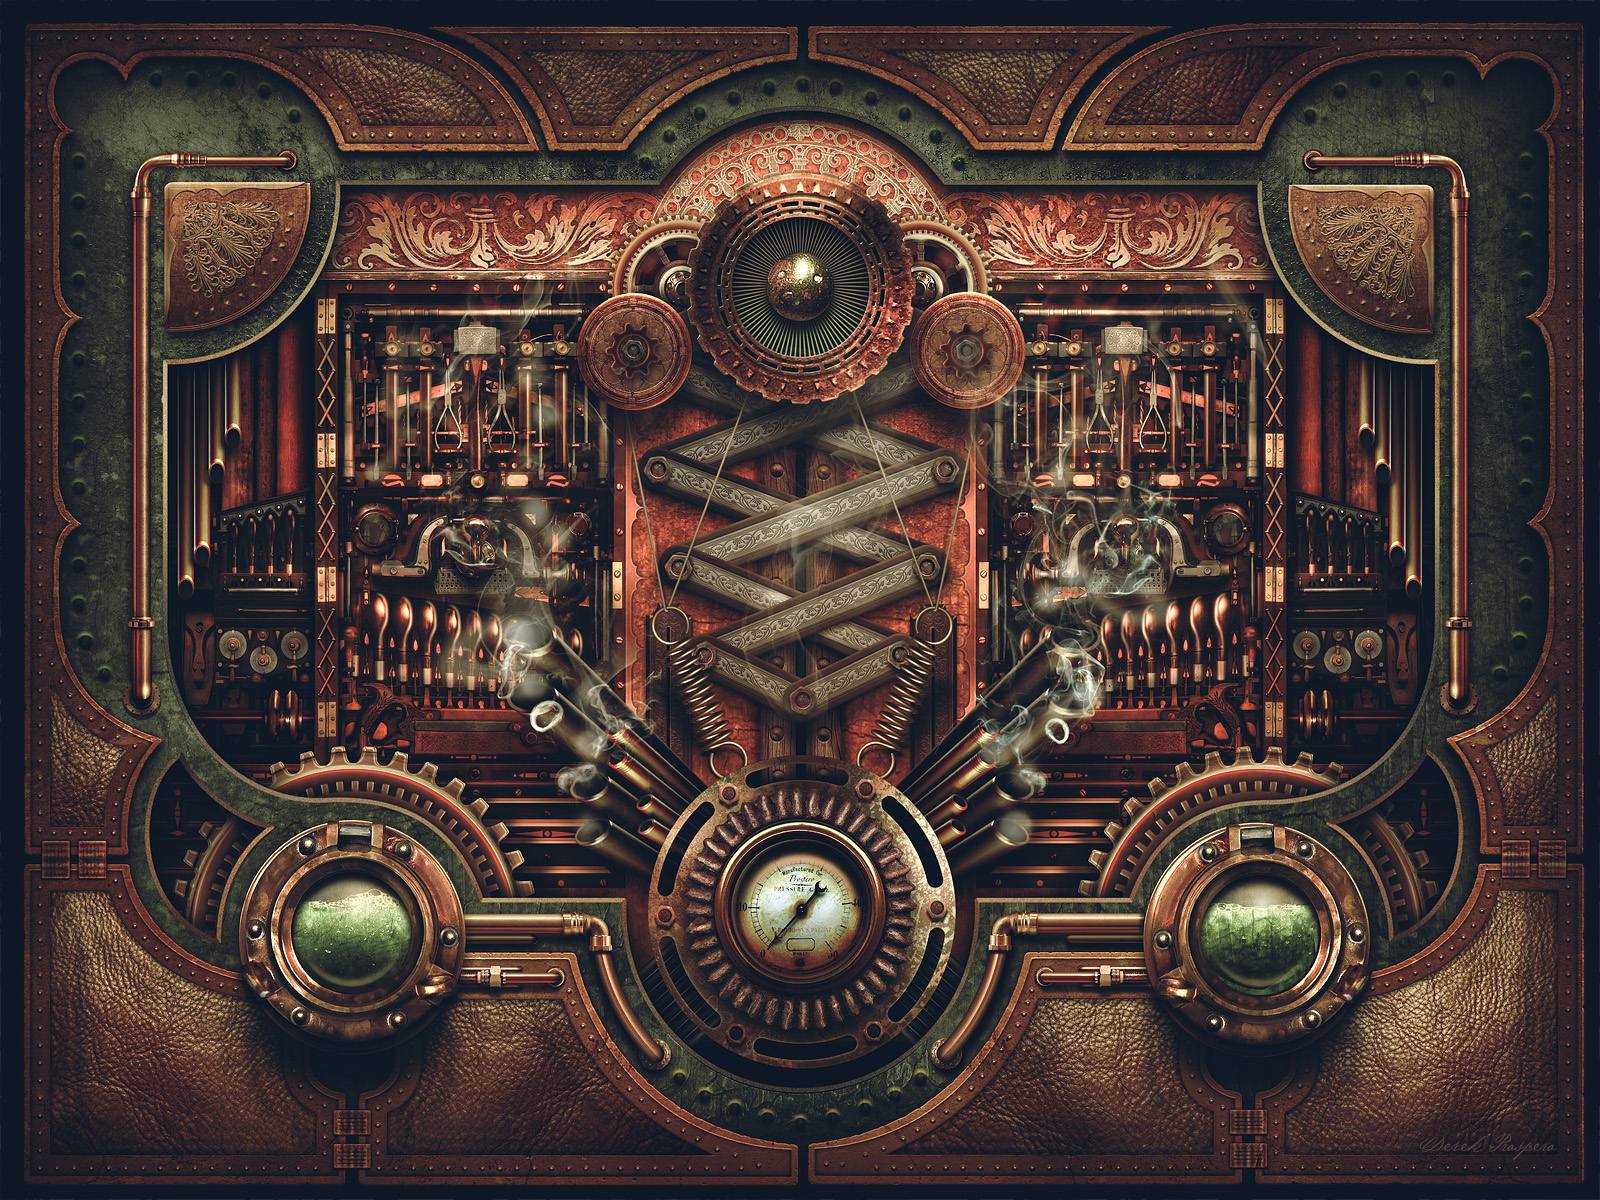 Steampunk Motherboard By DerekProspero On DeviantArt